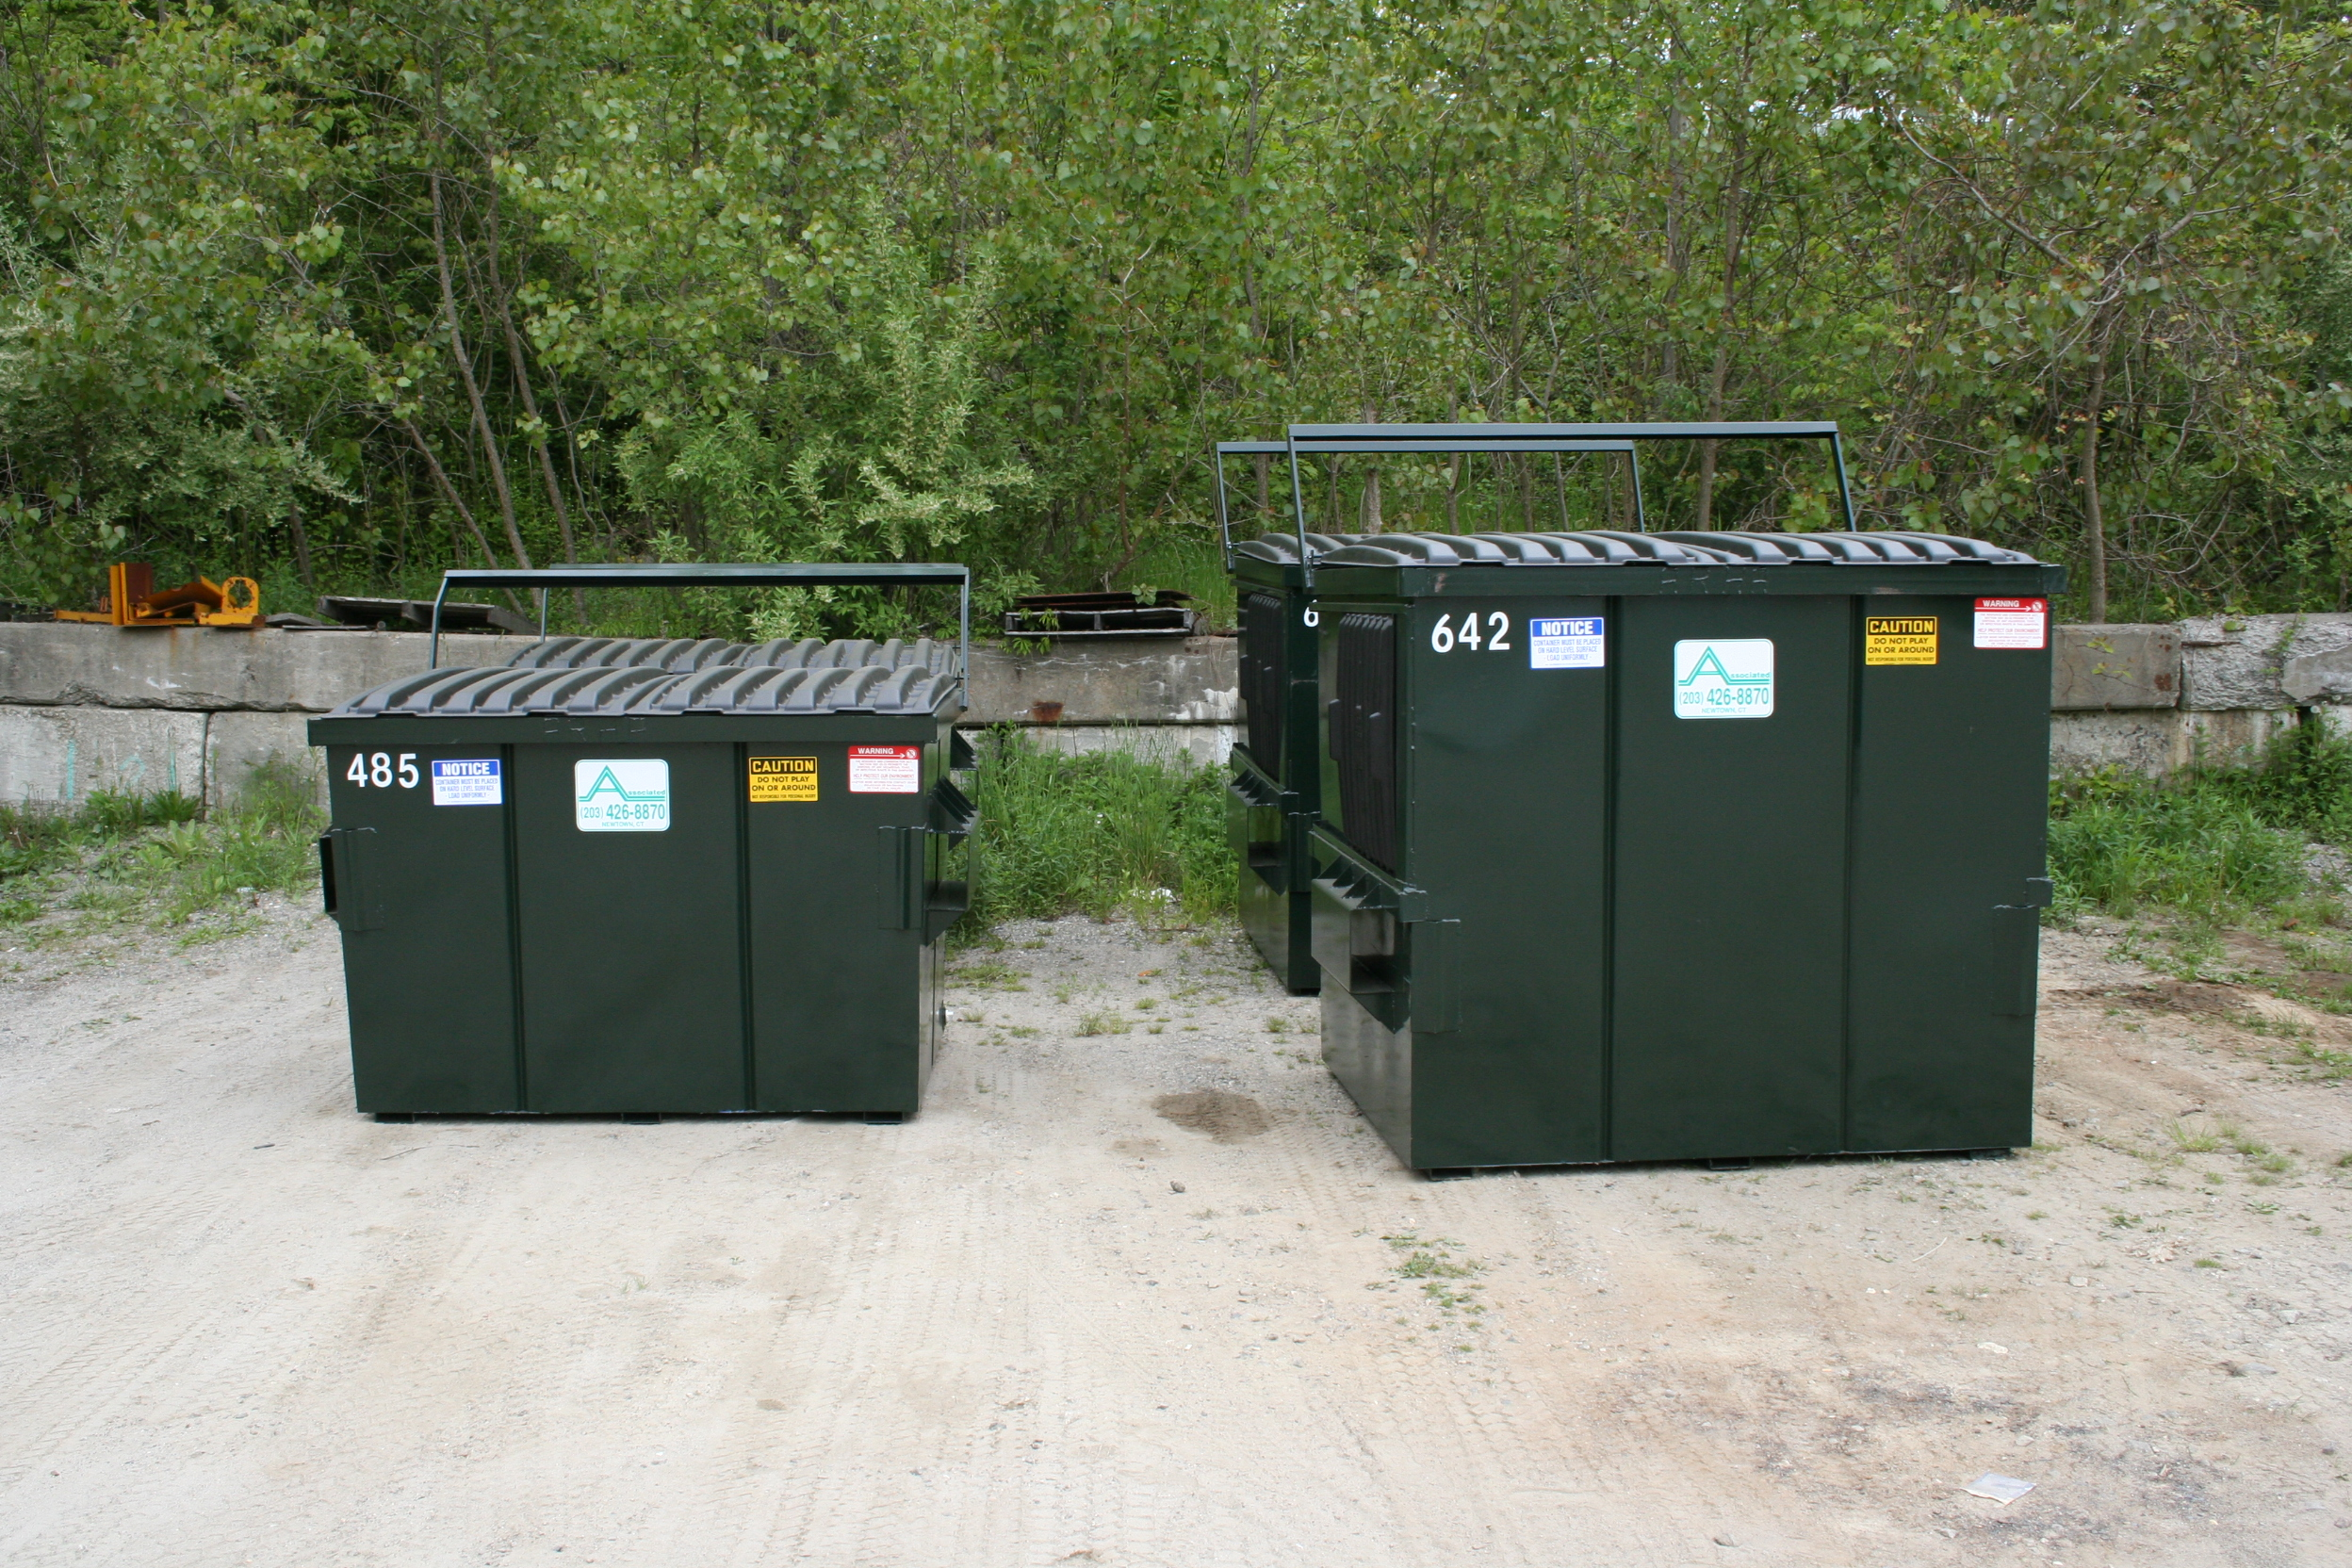 Industrial Garbage Containers : Commercial industrial trash removal containers